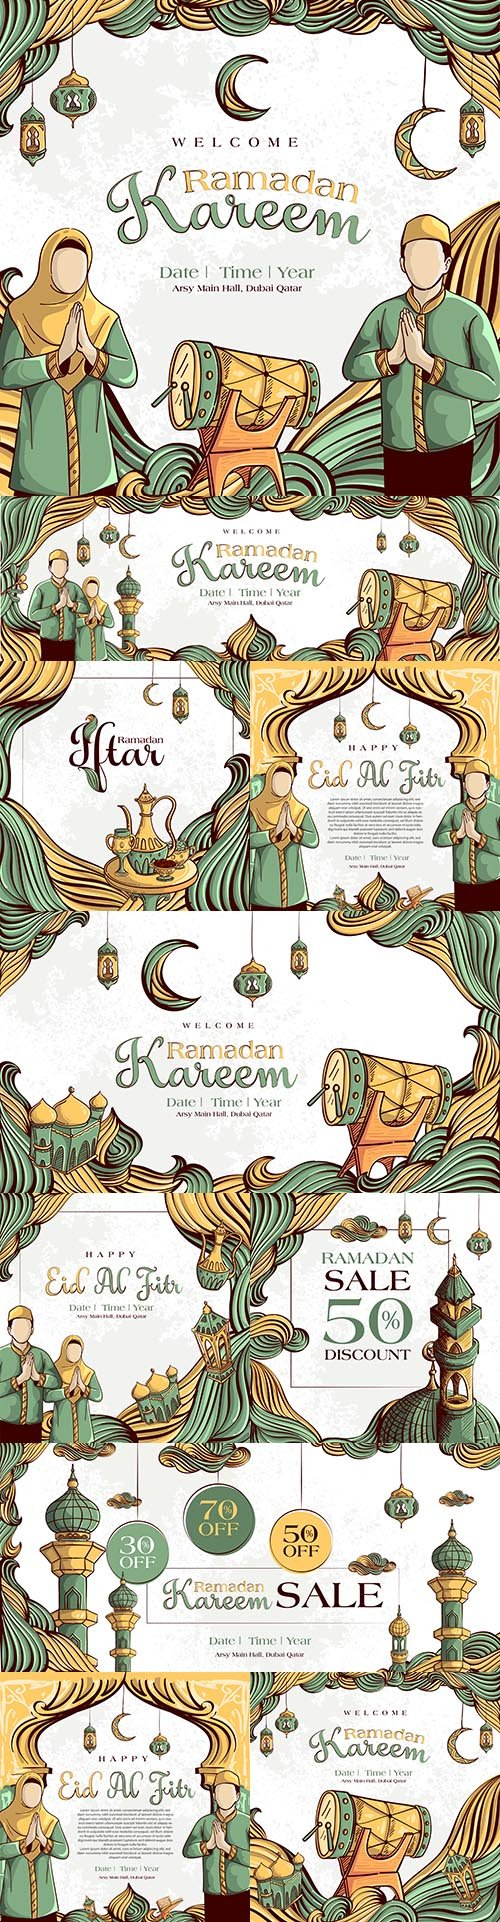 Ramadan Kareem painted Islamic illustration ornament grunge